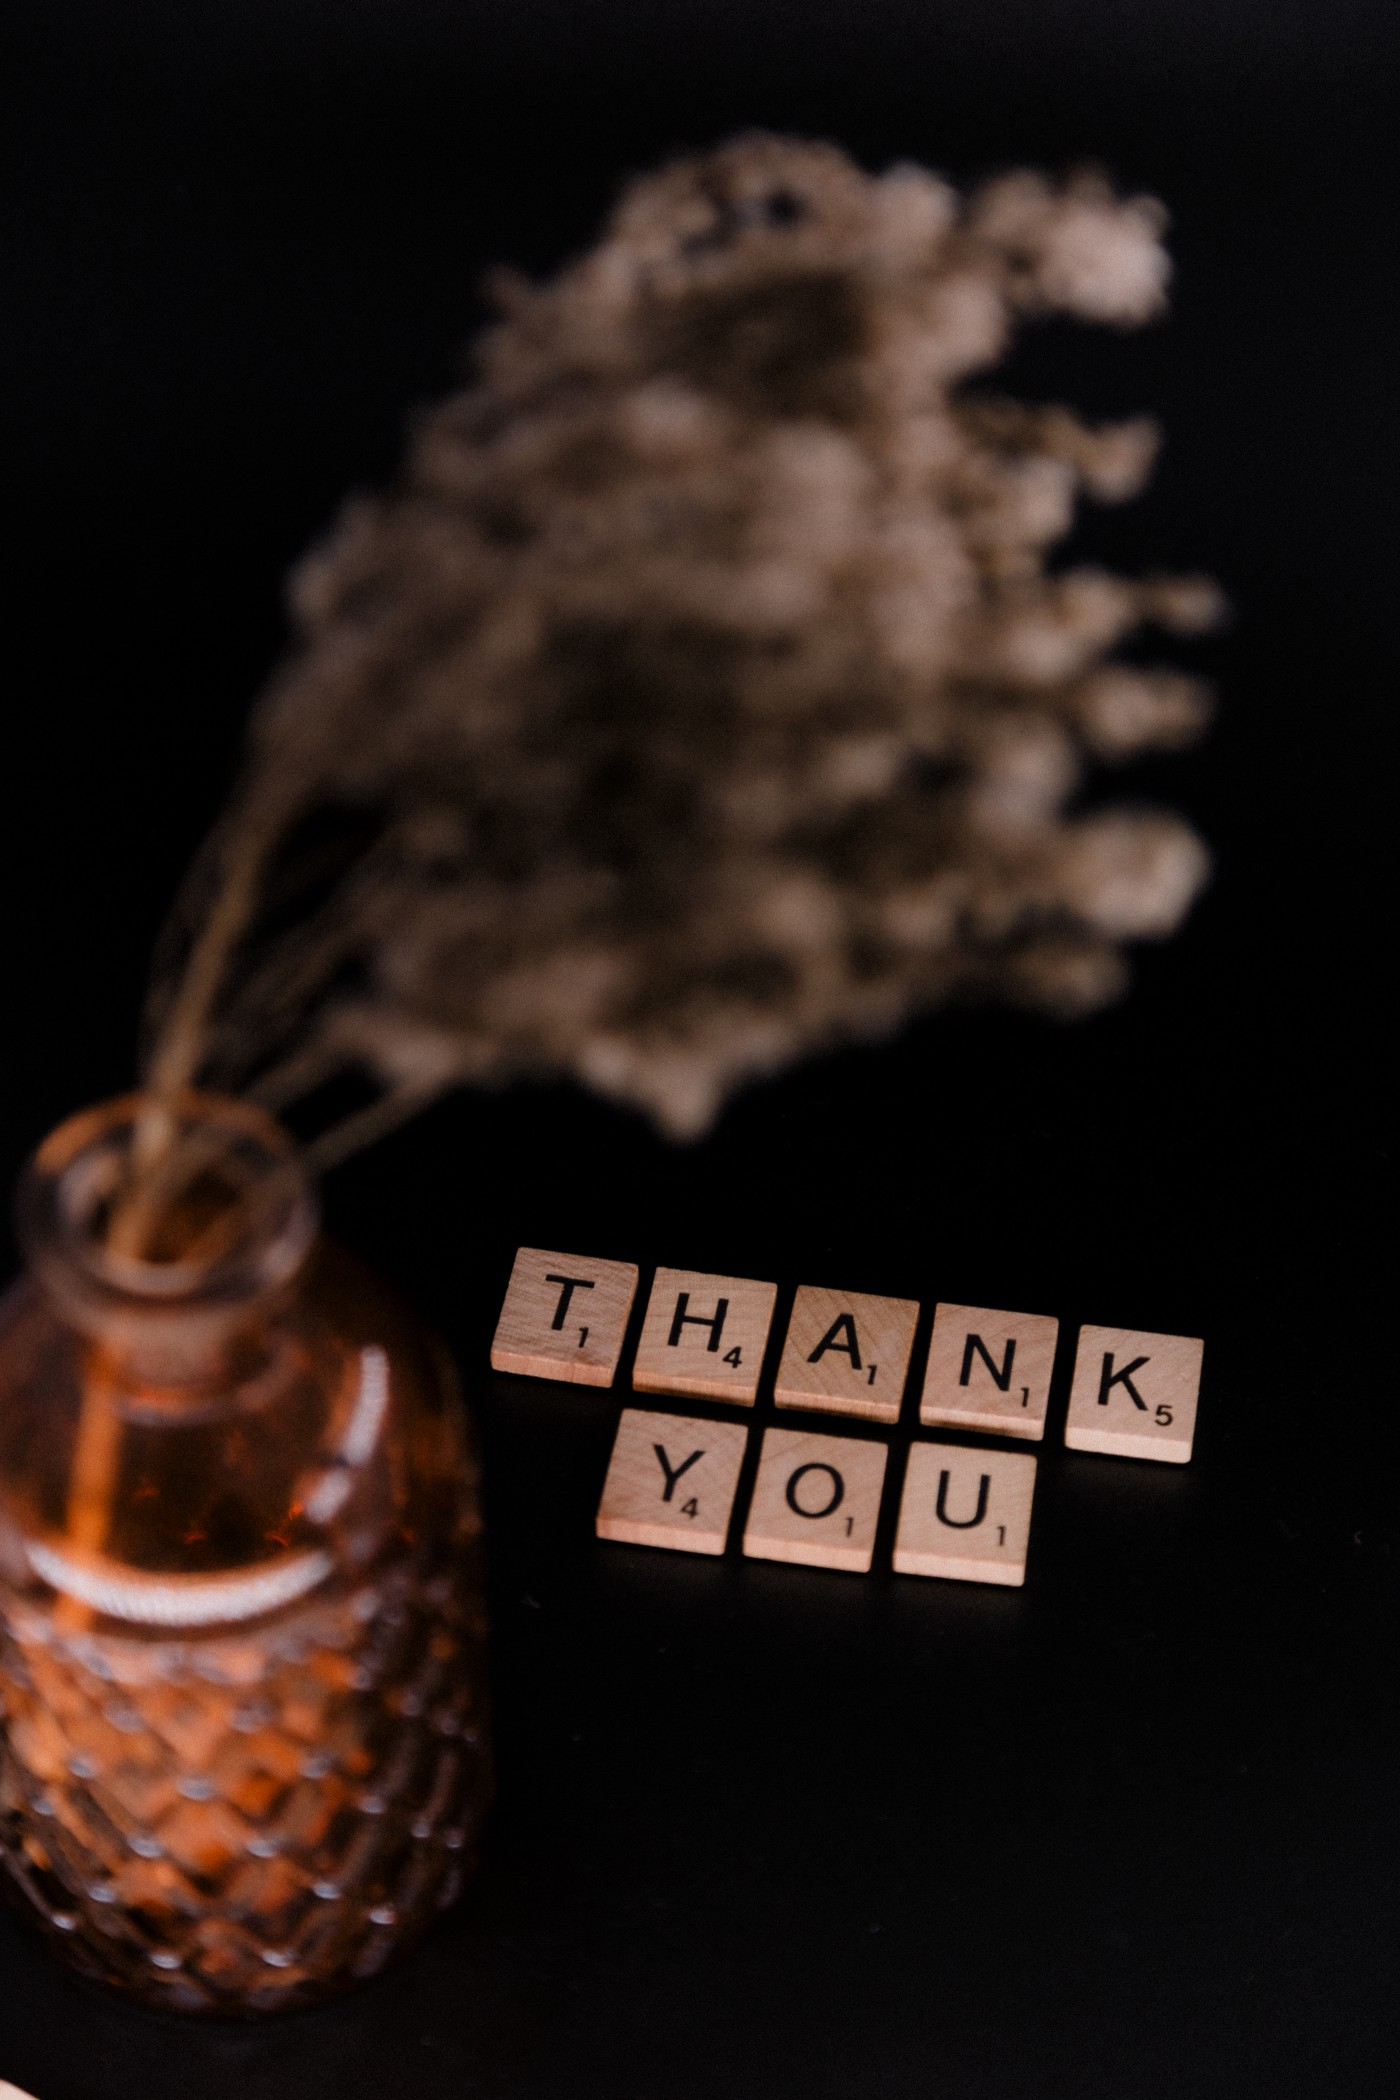 The image focus on a set of scrabble tiles that spell out the words THANK YOU